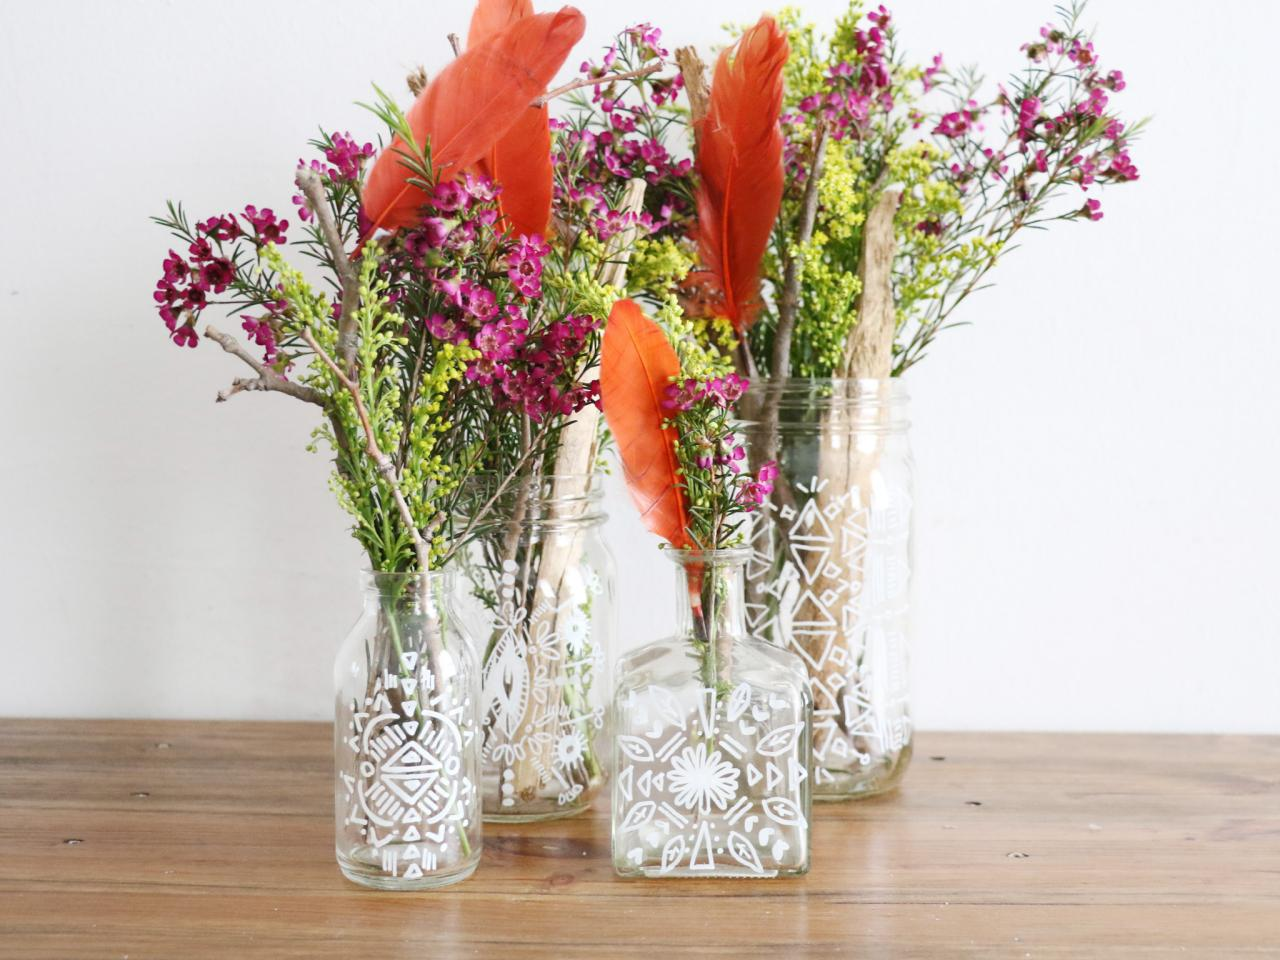 11 easy crafts using everyday items hgtvs decorating design bohemian inspired vases and jars reviewsmspy